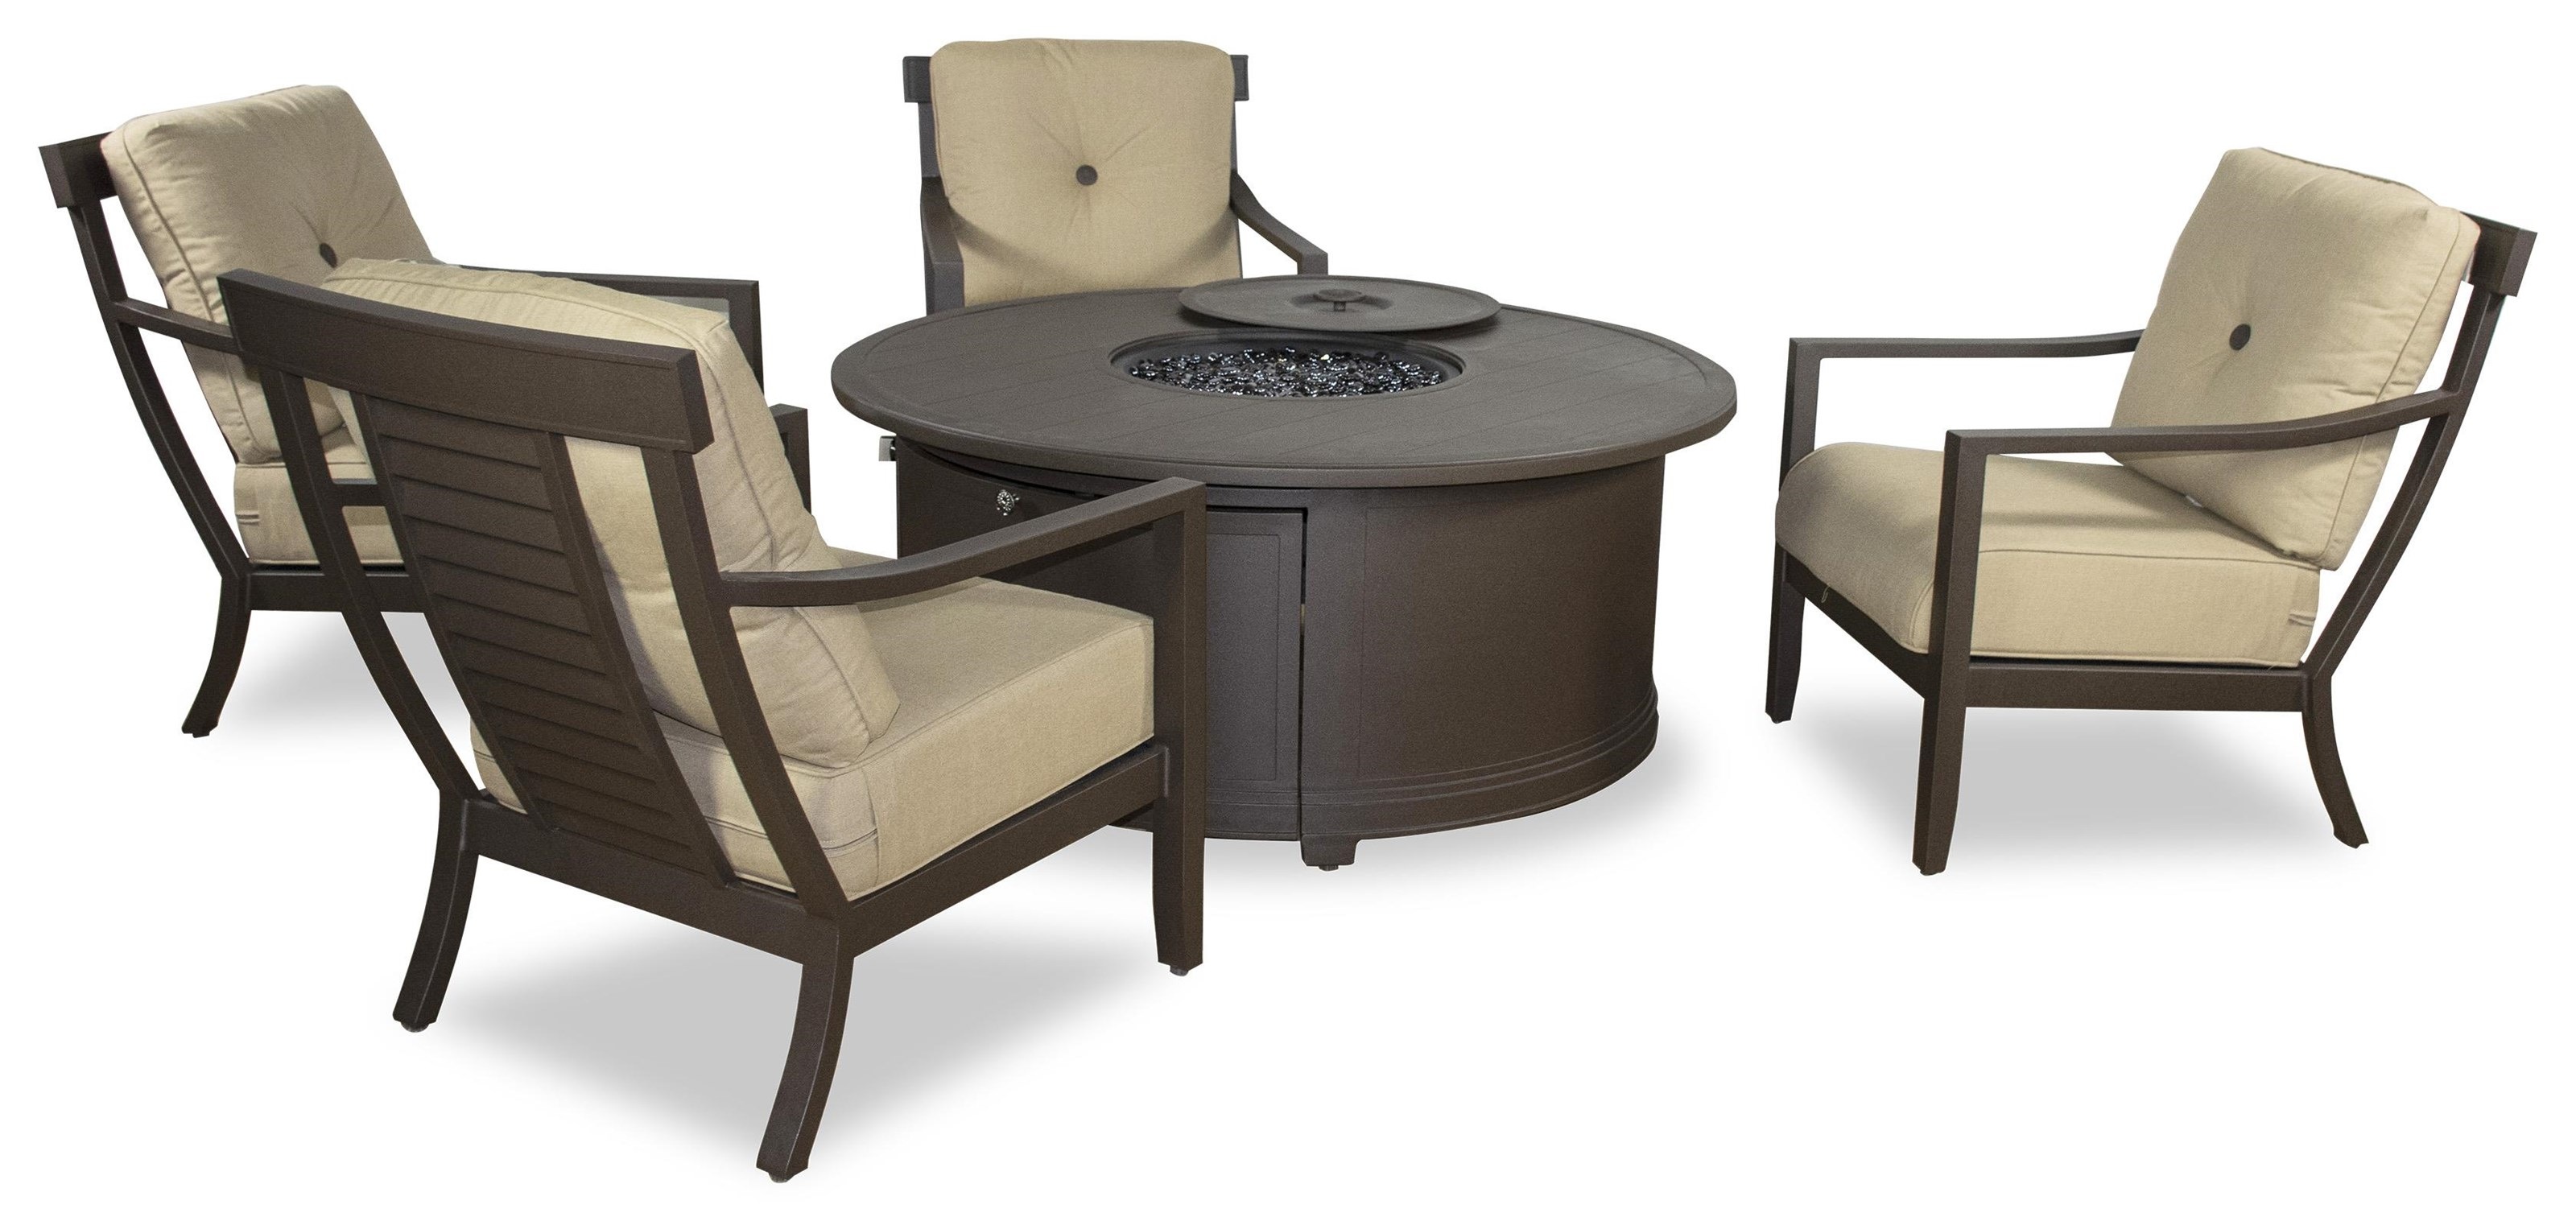 54 in. Firepit and 4 Lounge Chairs